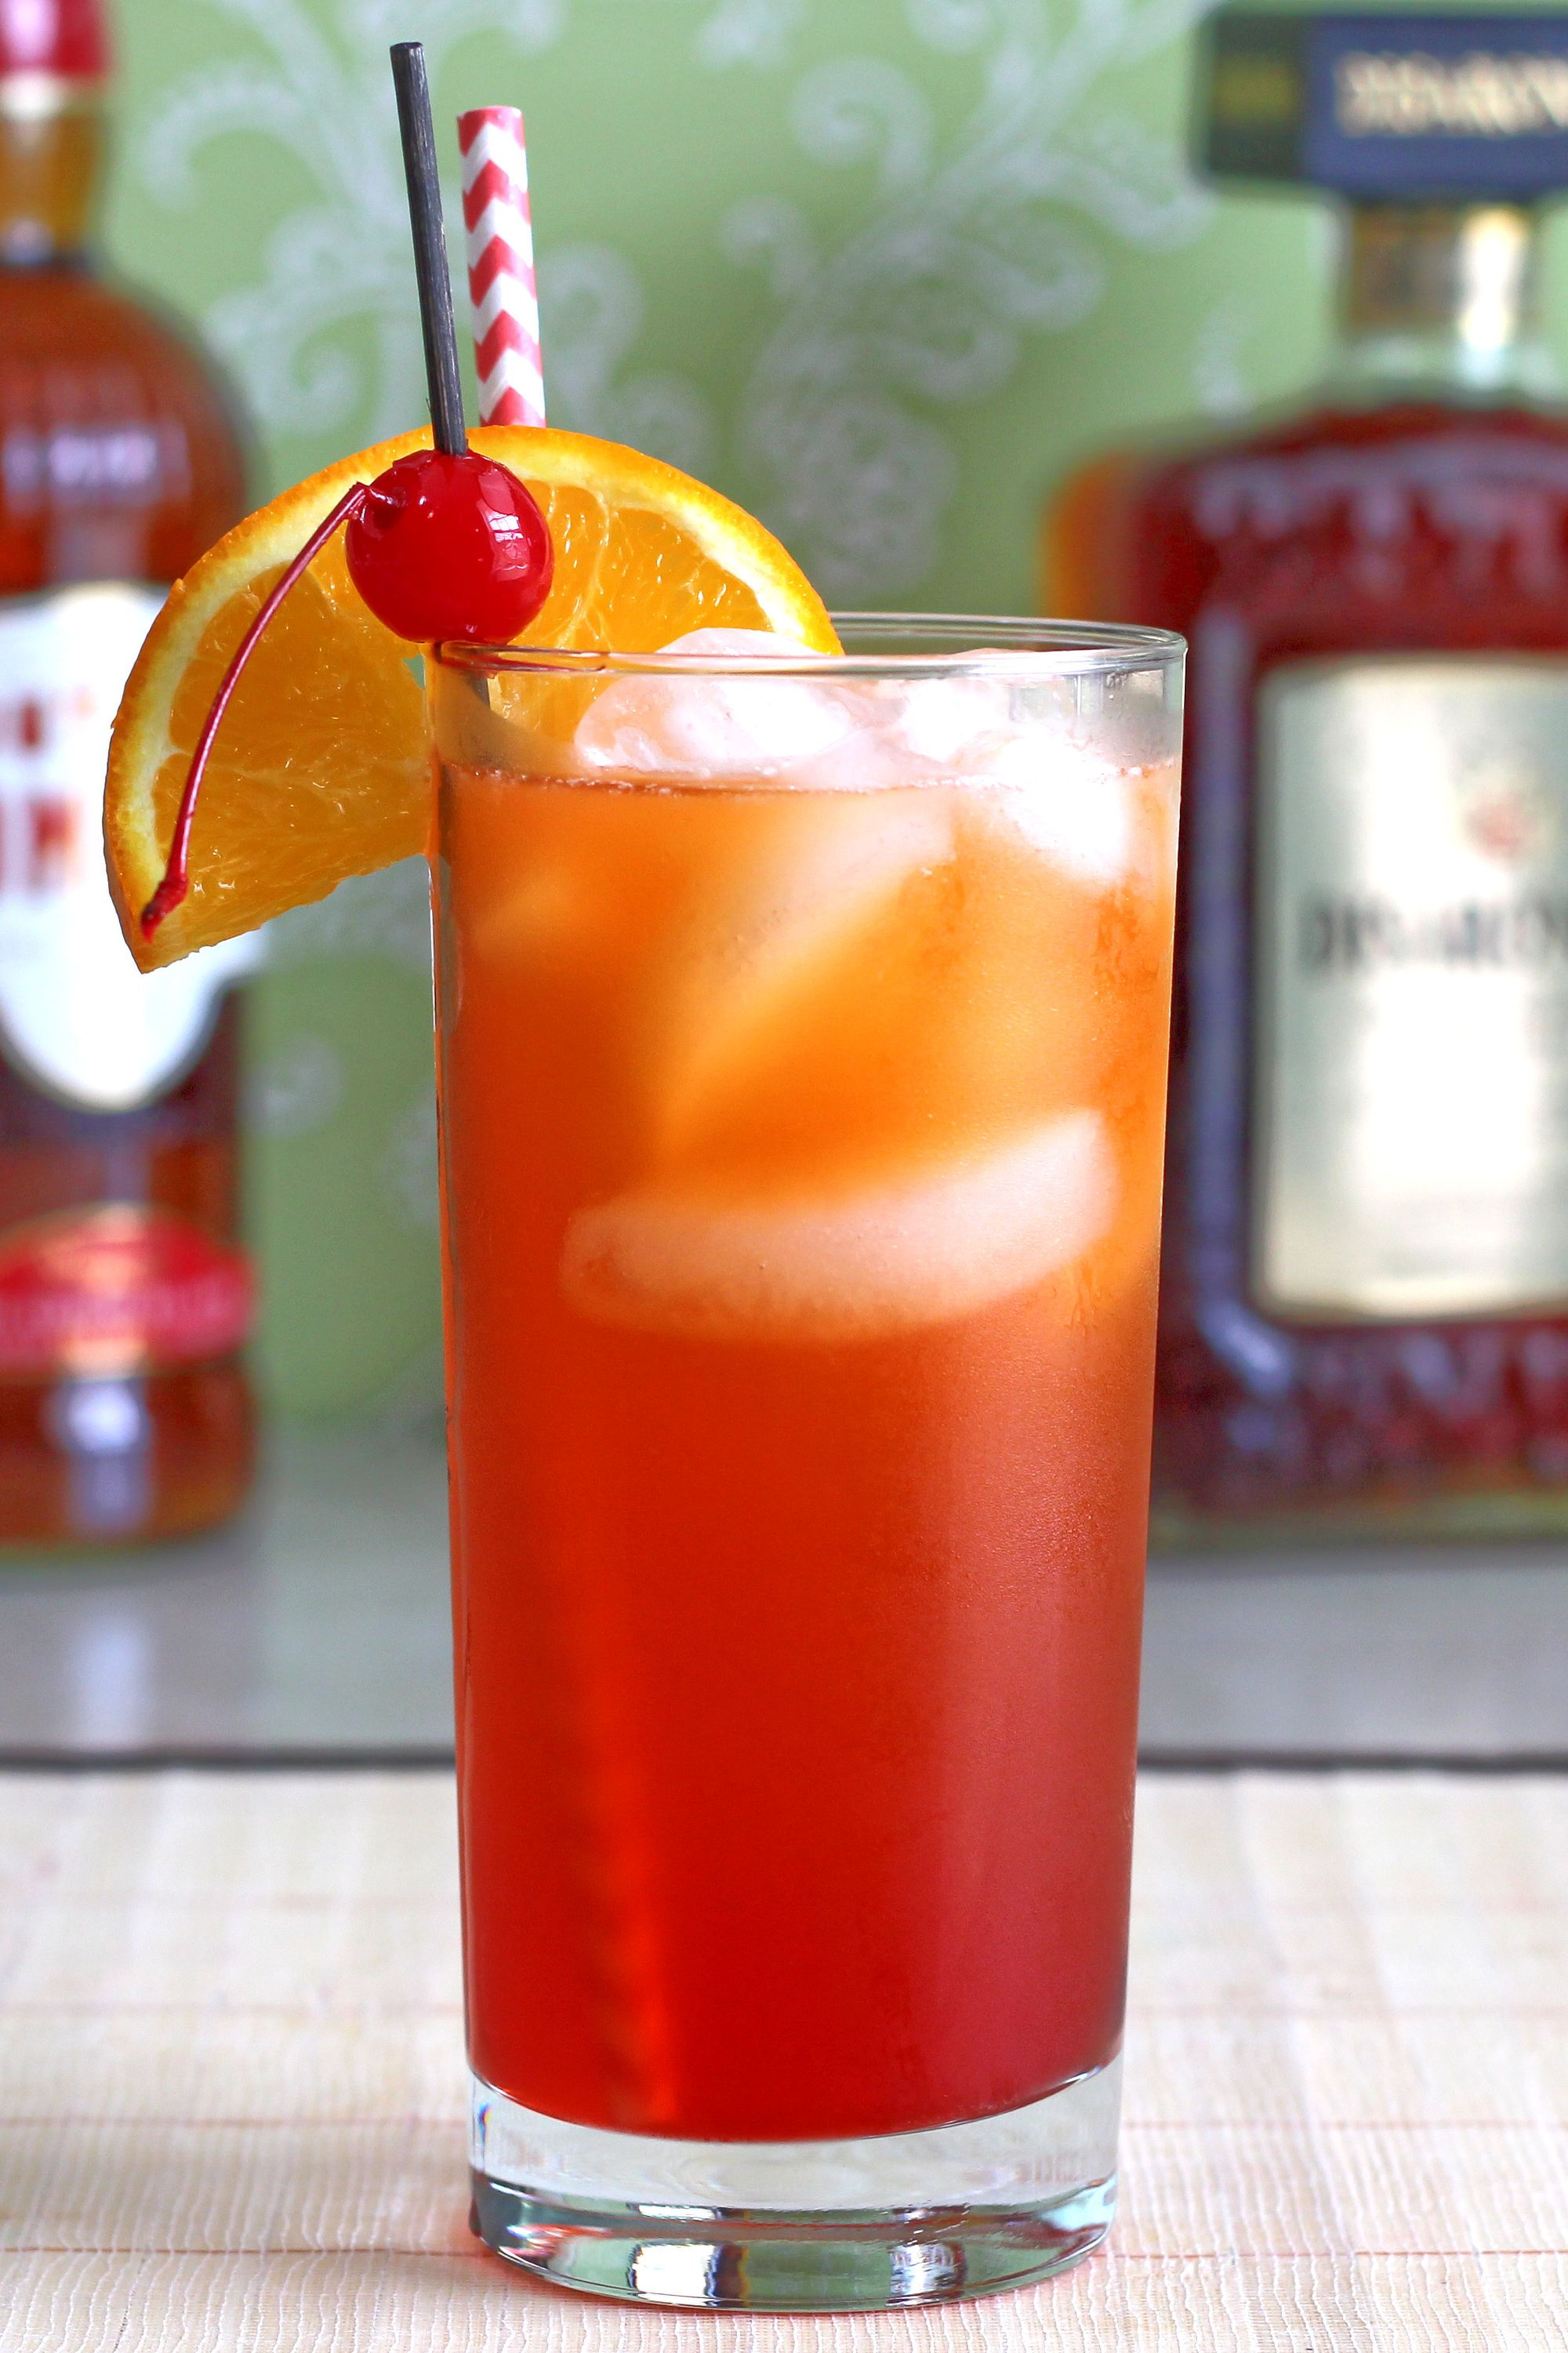 The Alabama Slammer blends Southern Comfort, amaretto, sloe gin and orange juice for a sweet, fruity flavor. It's easy to make and great for barbecues and other parties.